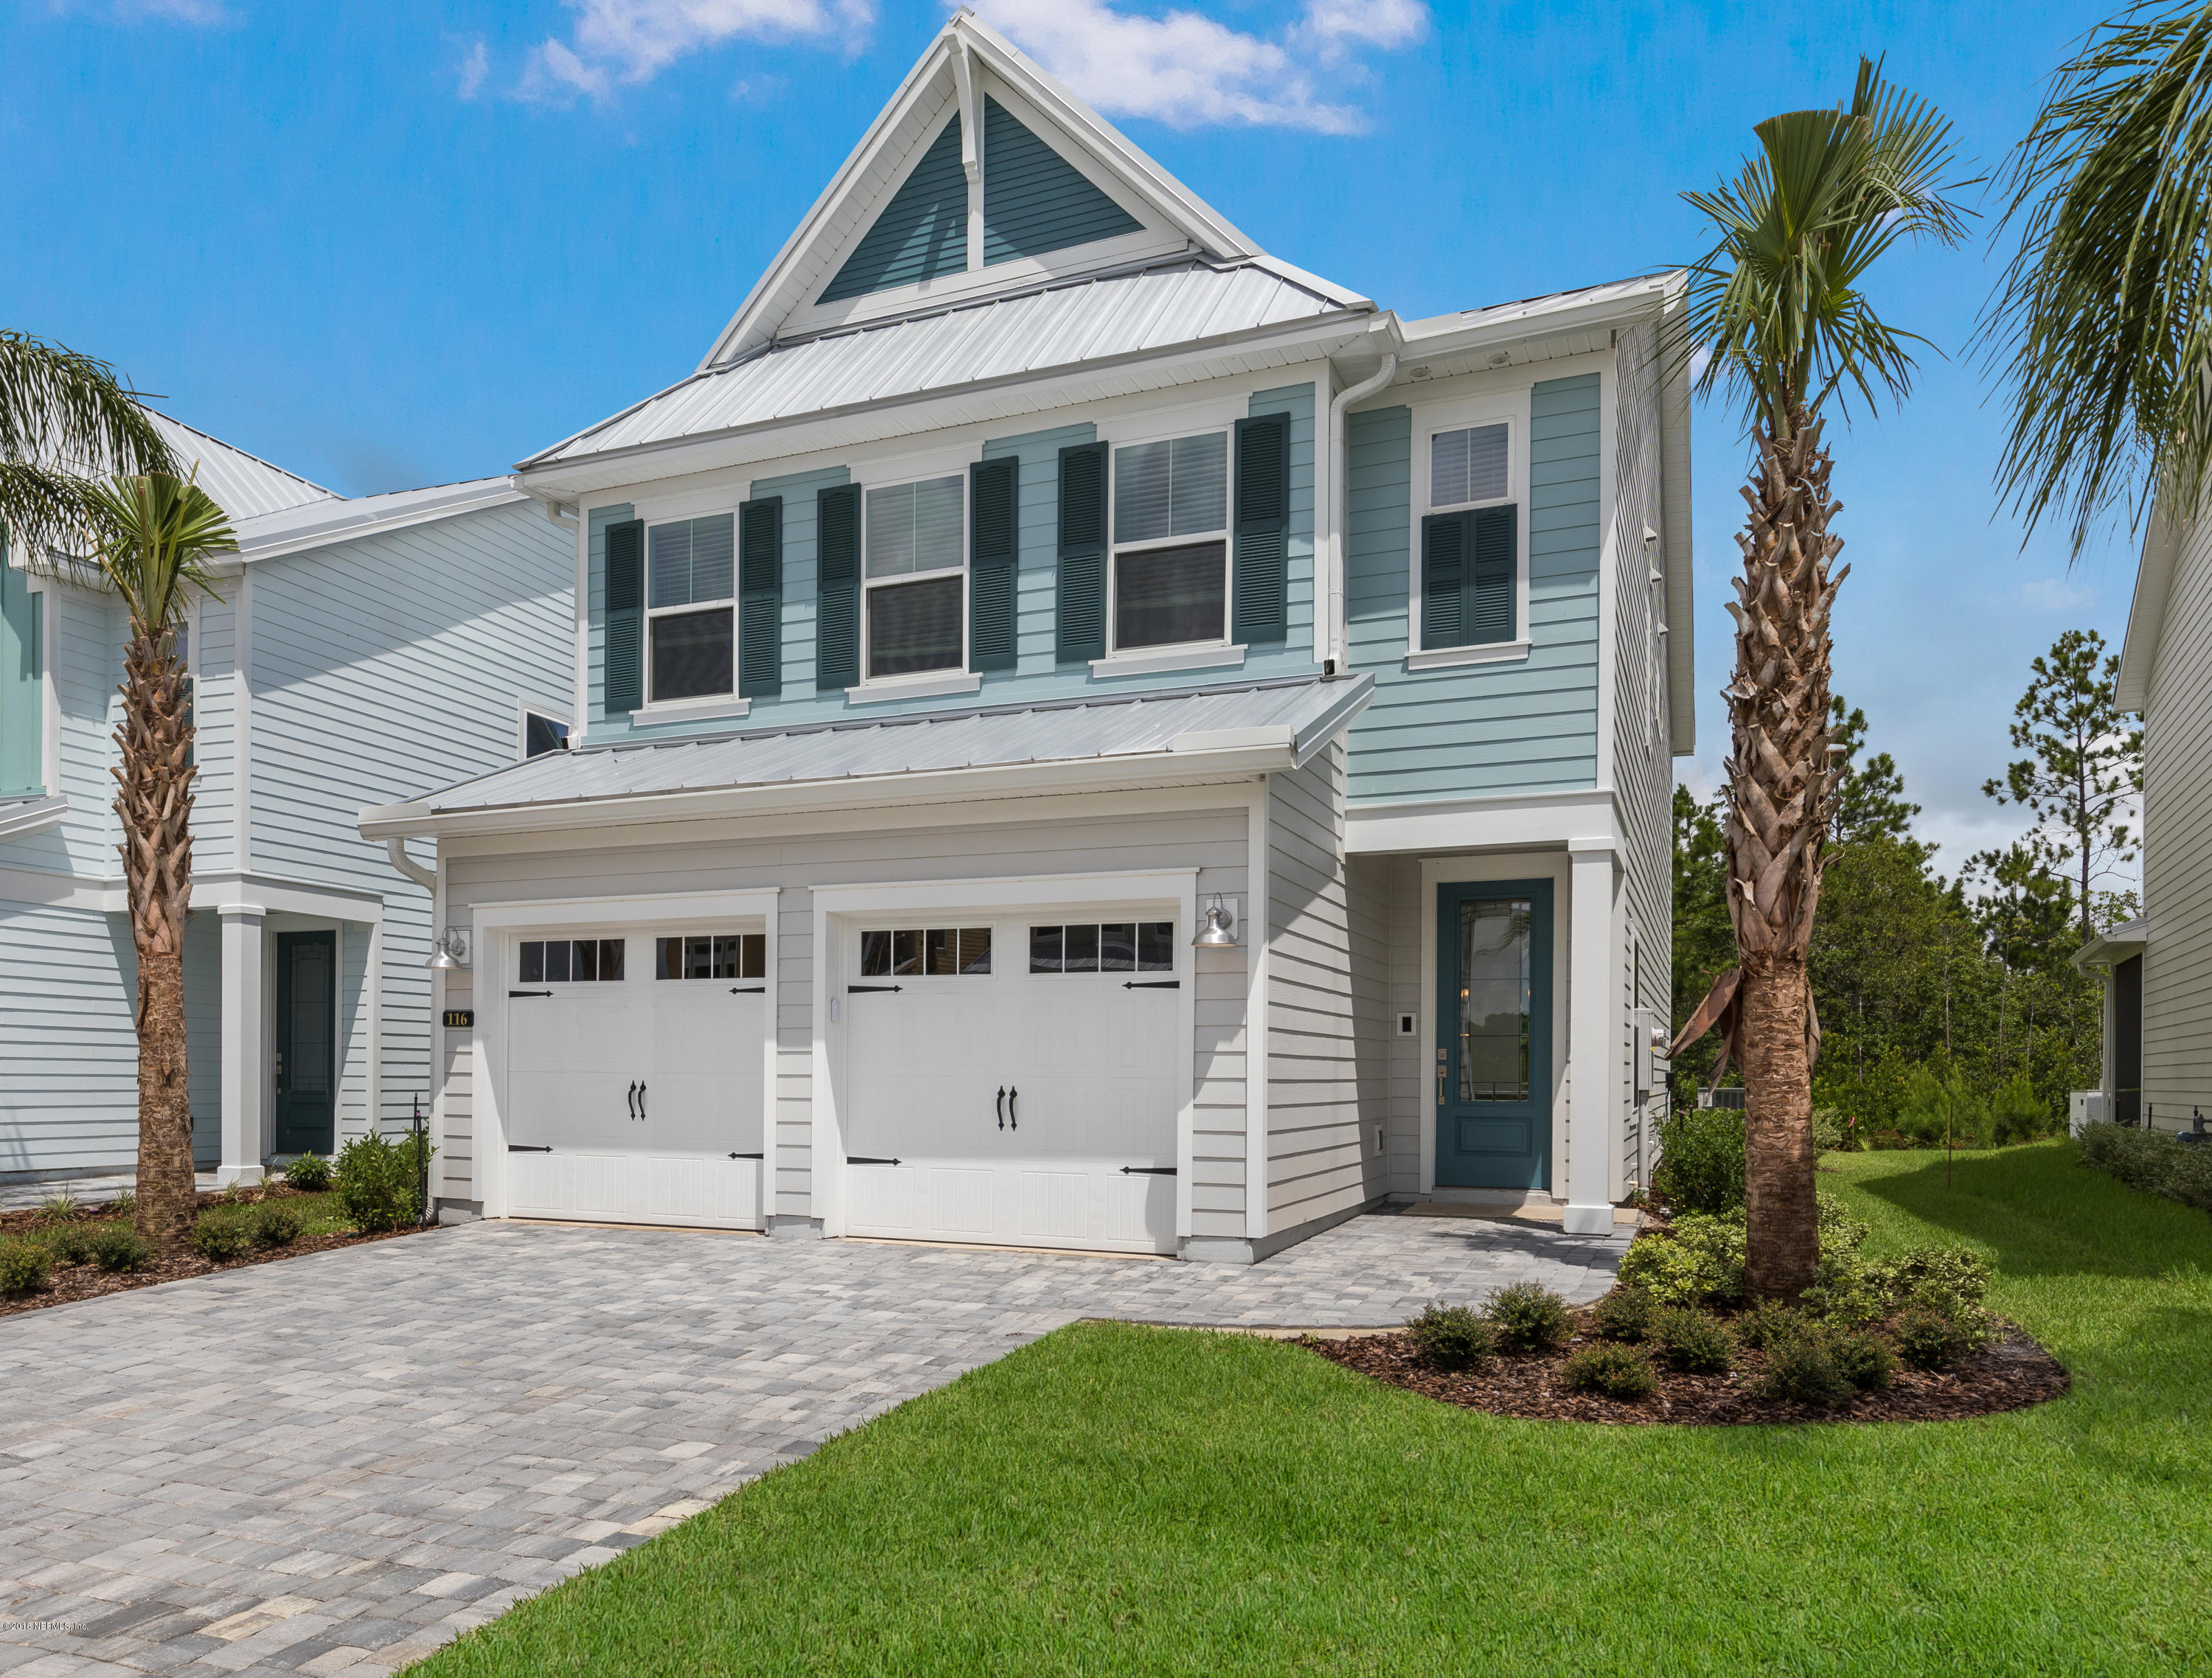 116 CLIFTON BAY, ST JOHNS, FLORIDA 32259, 3 Bedrooms Bedrooms, ,2 BathroomsBathrooms,Residential - single family,For sale,CLIFTON BAY,941827